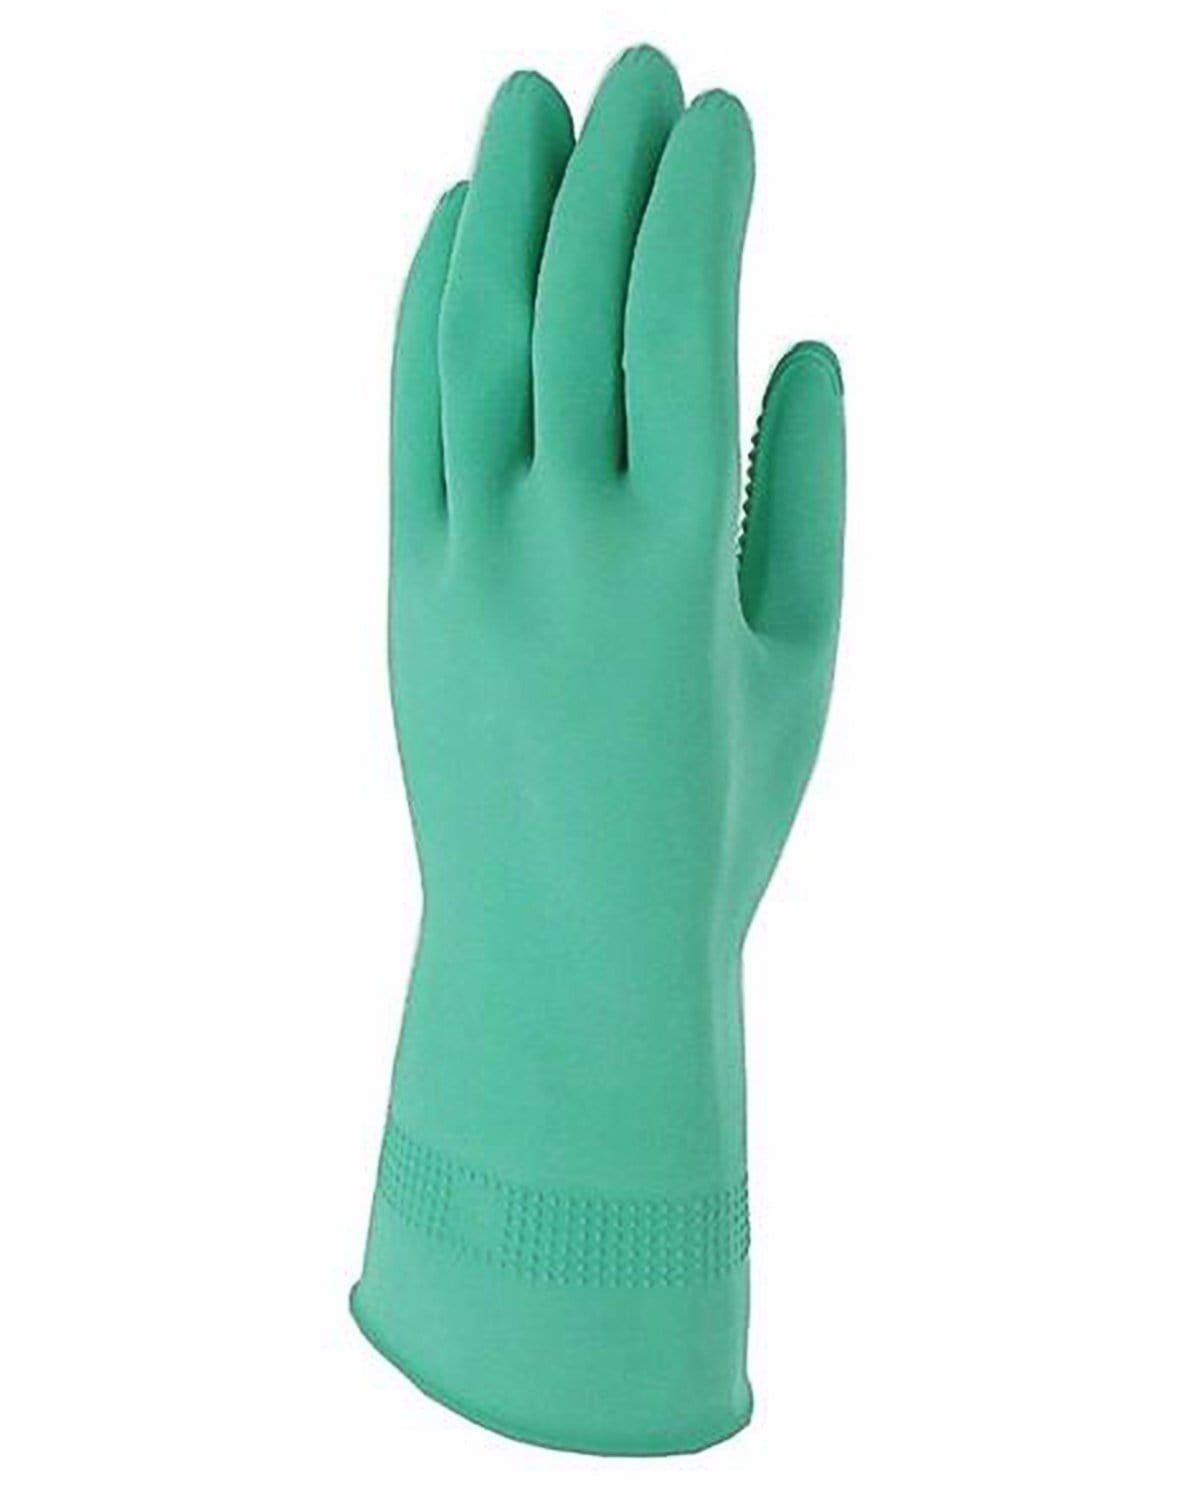 ridged rubber gloves donning Green Gloves Application M